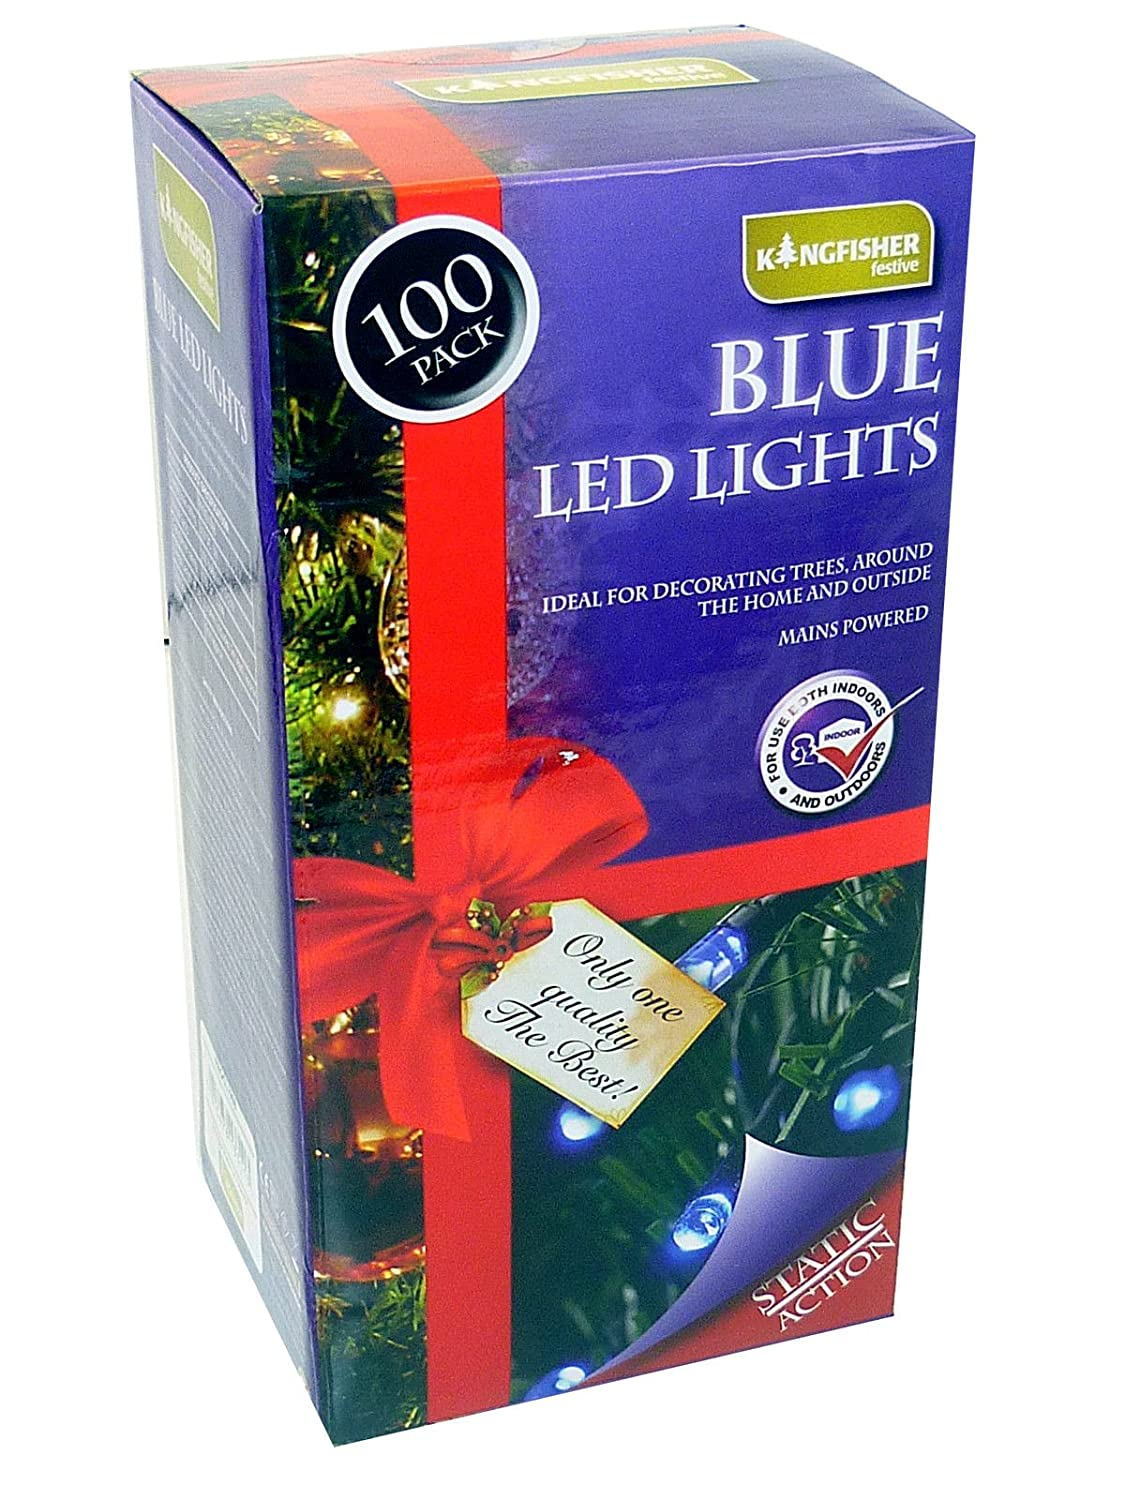 100 Outdoor Static LED Christmas Lights in Blue: Amazon.co.uk ...